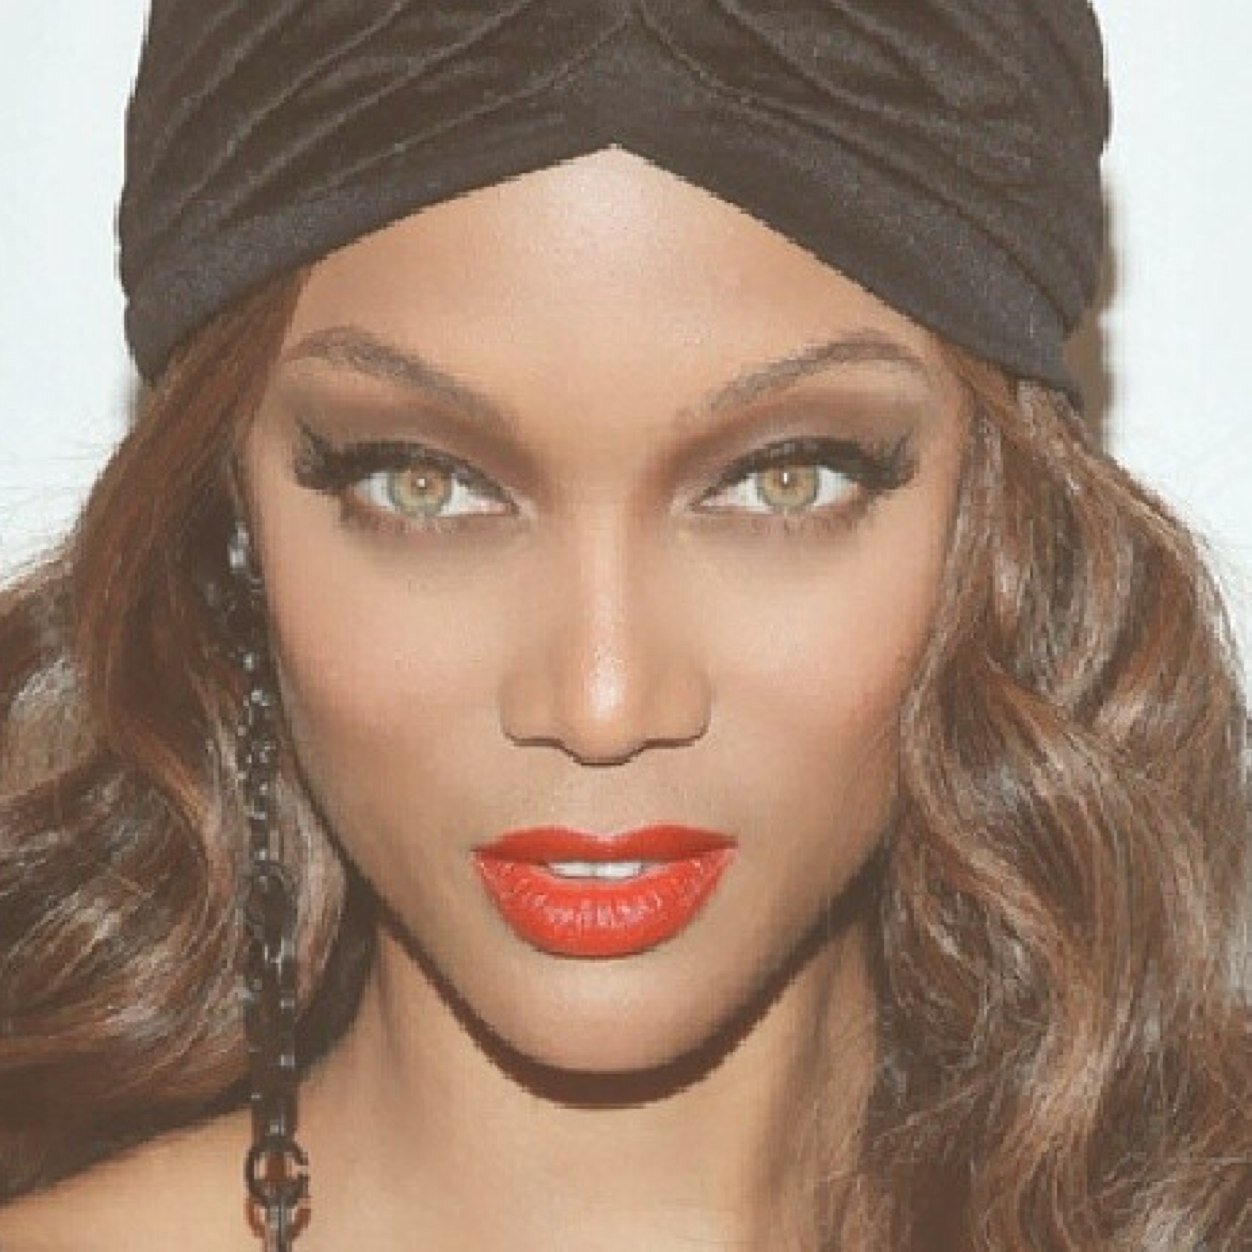 Tyra Banks On Glee: Fansite Photos, Videos, Contests